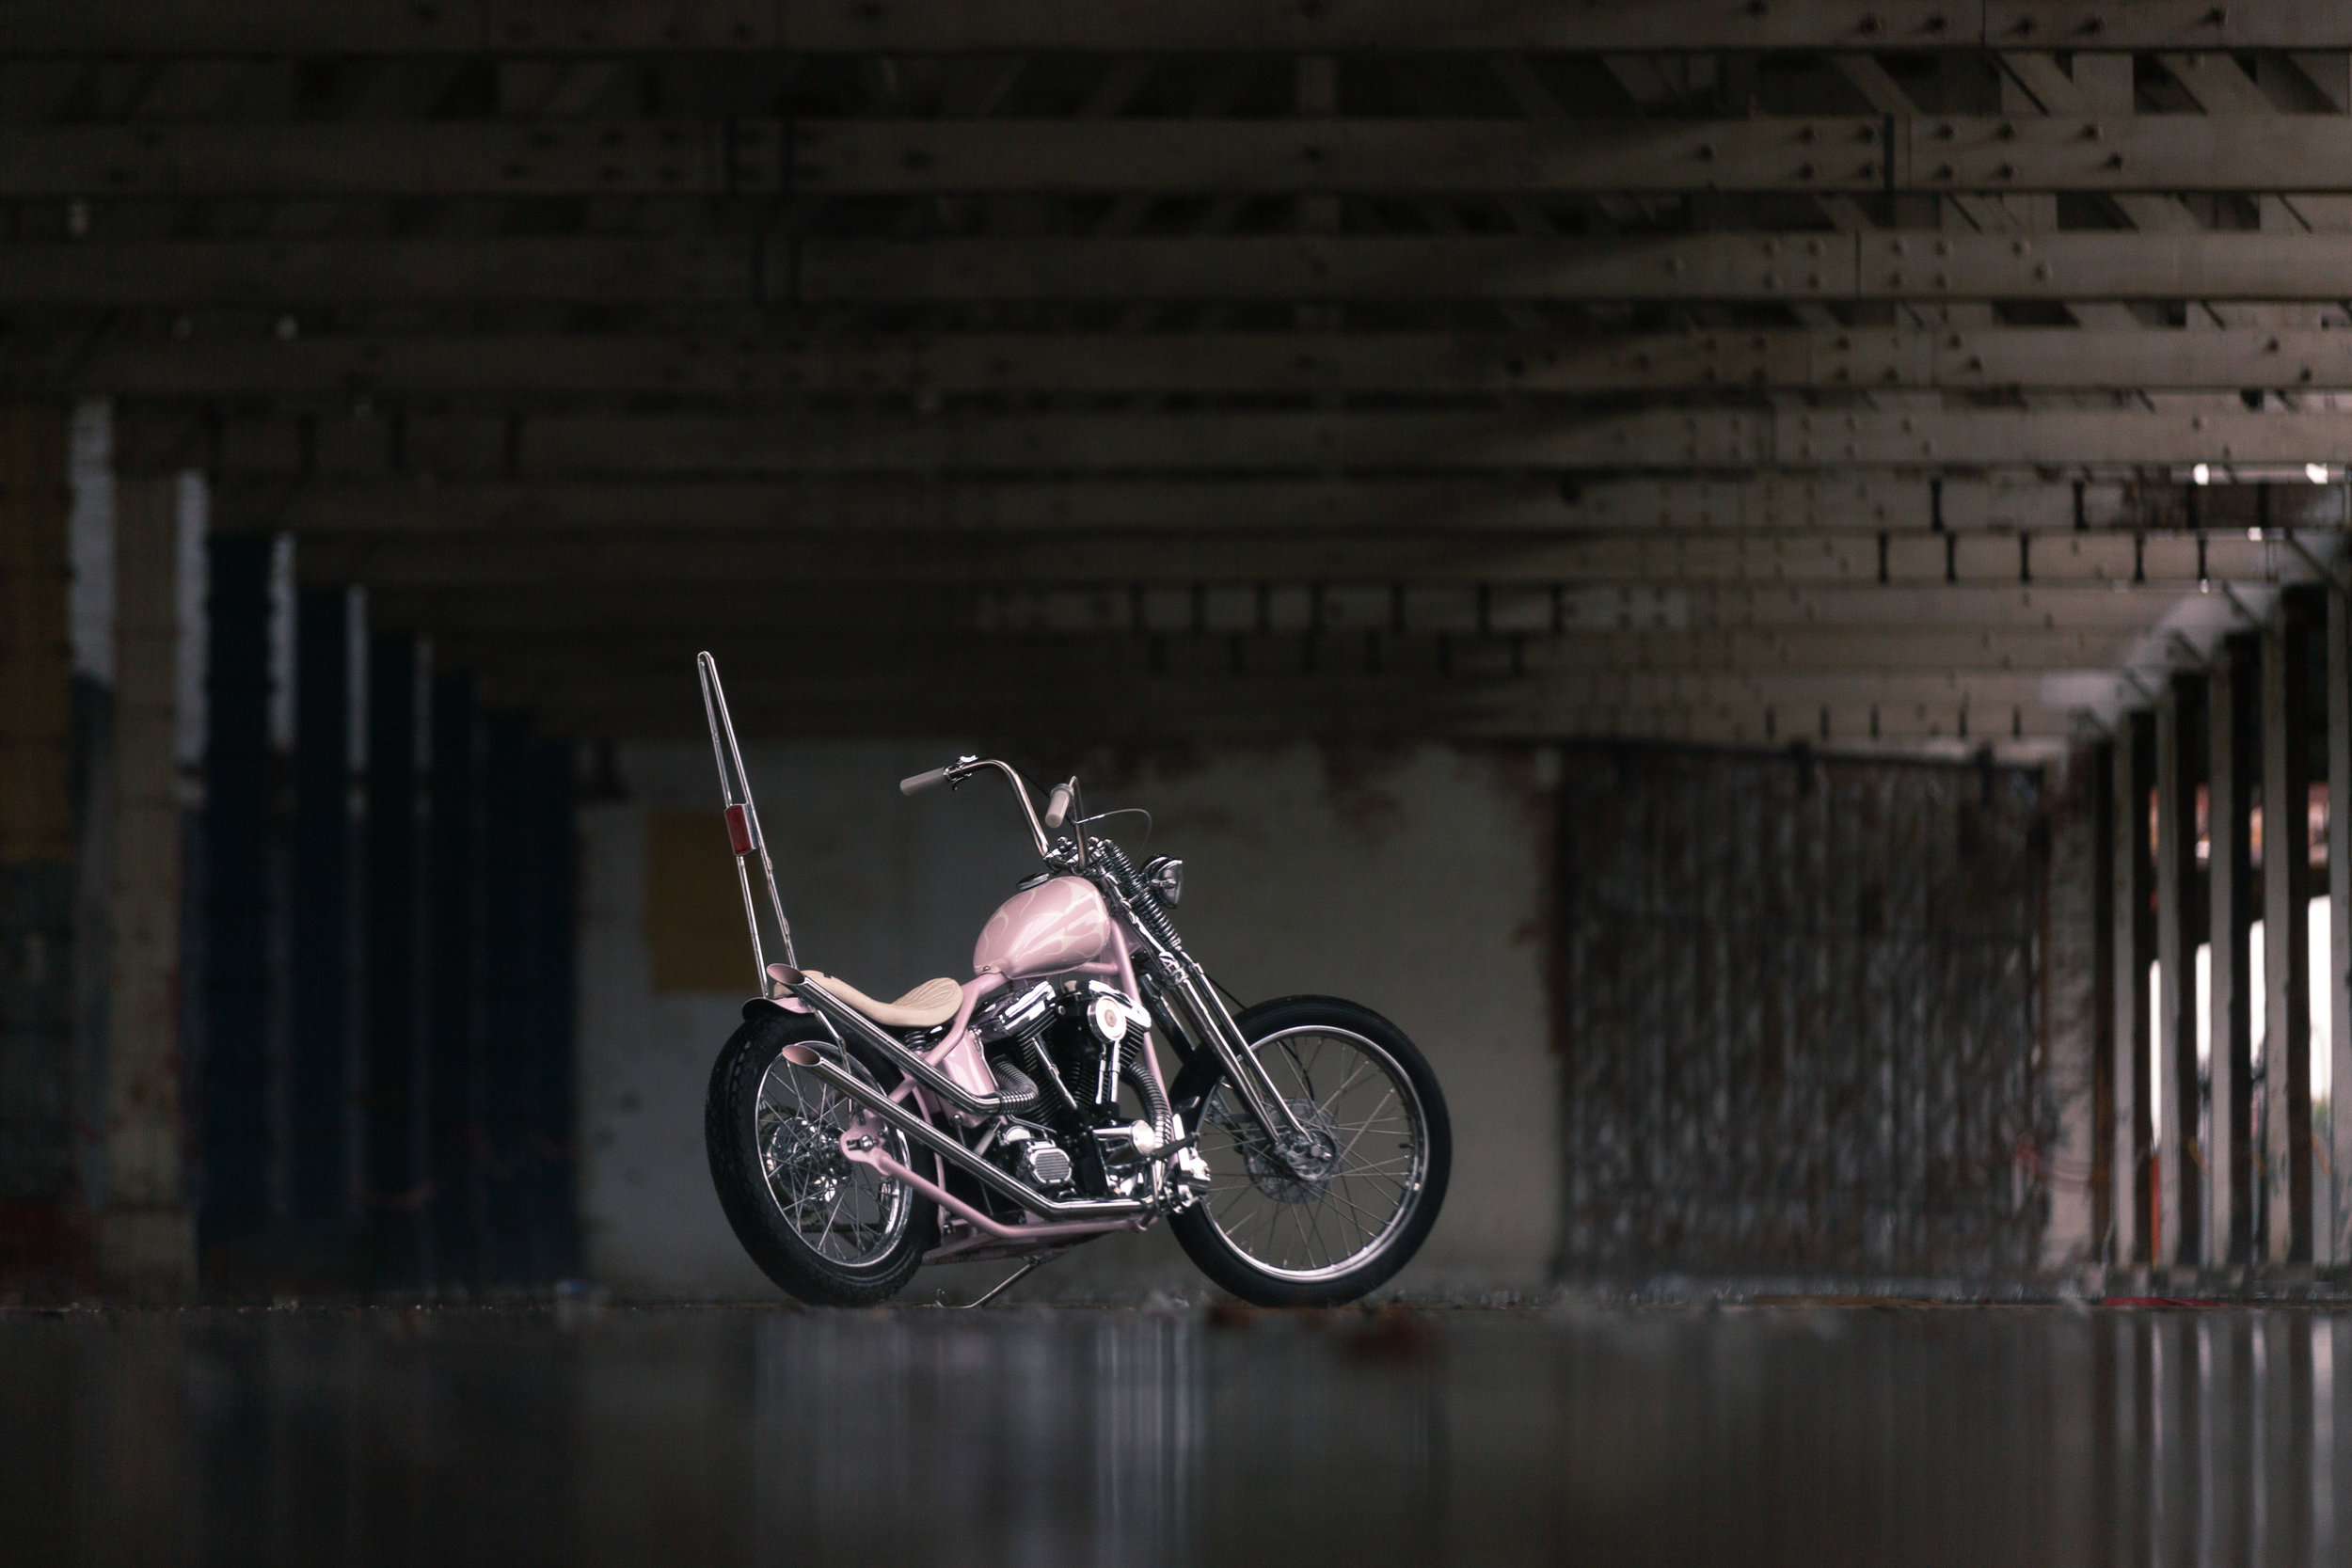 Kable's Pink Evo Chopper  - Click for photo gallery.